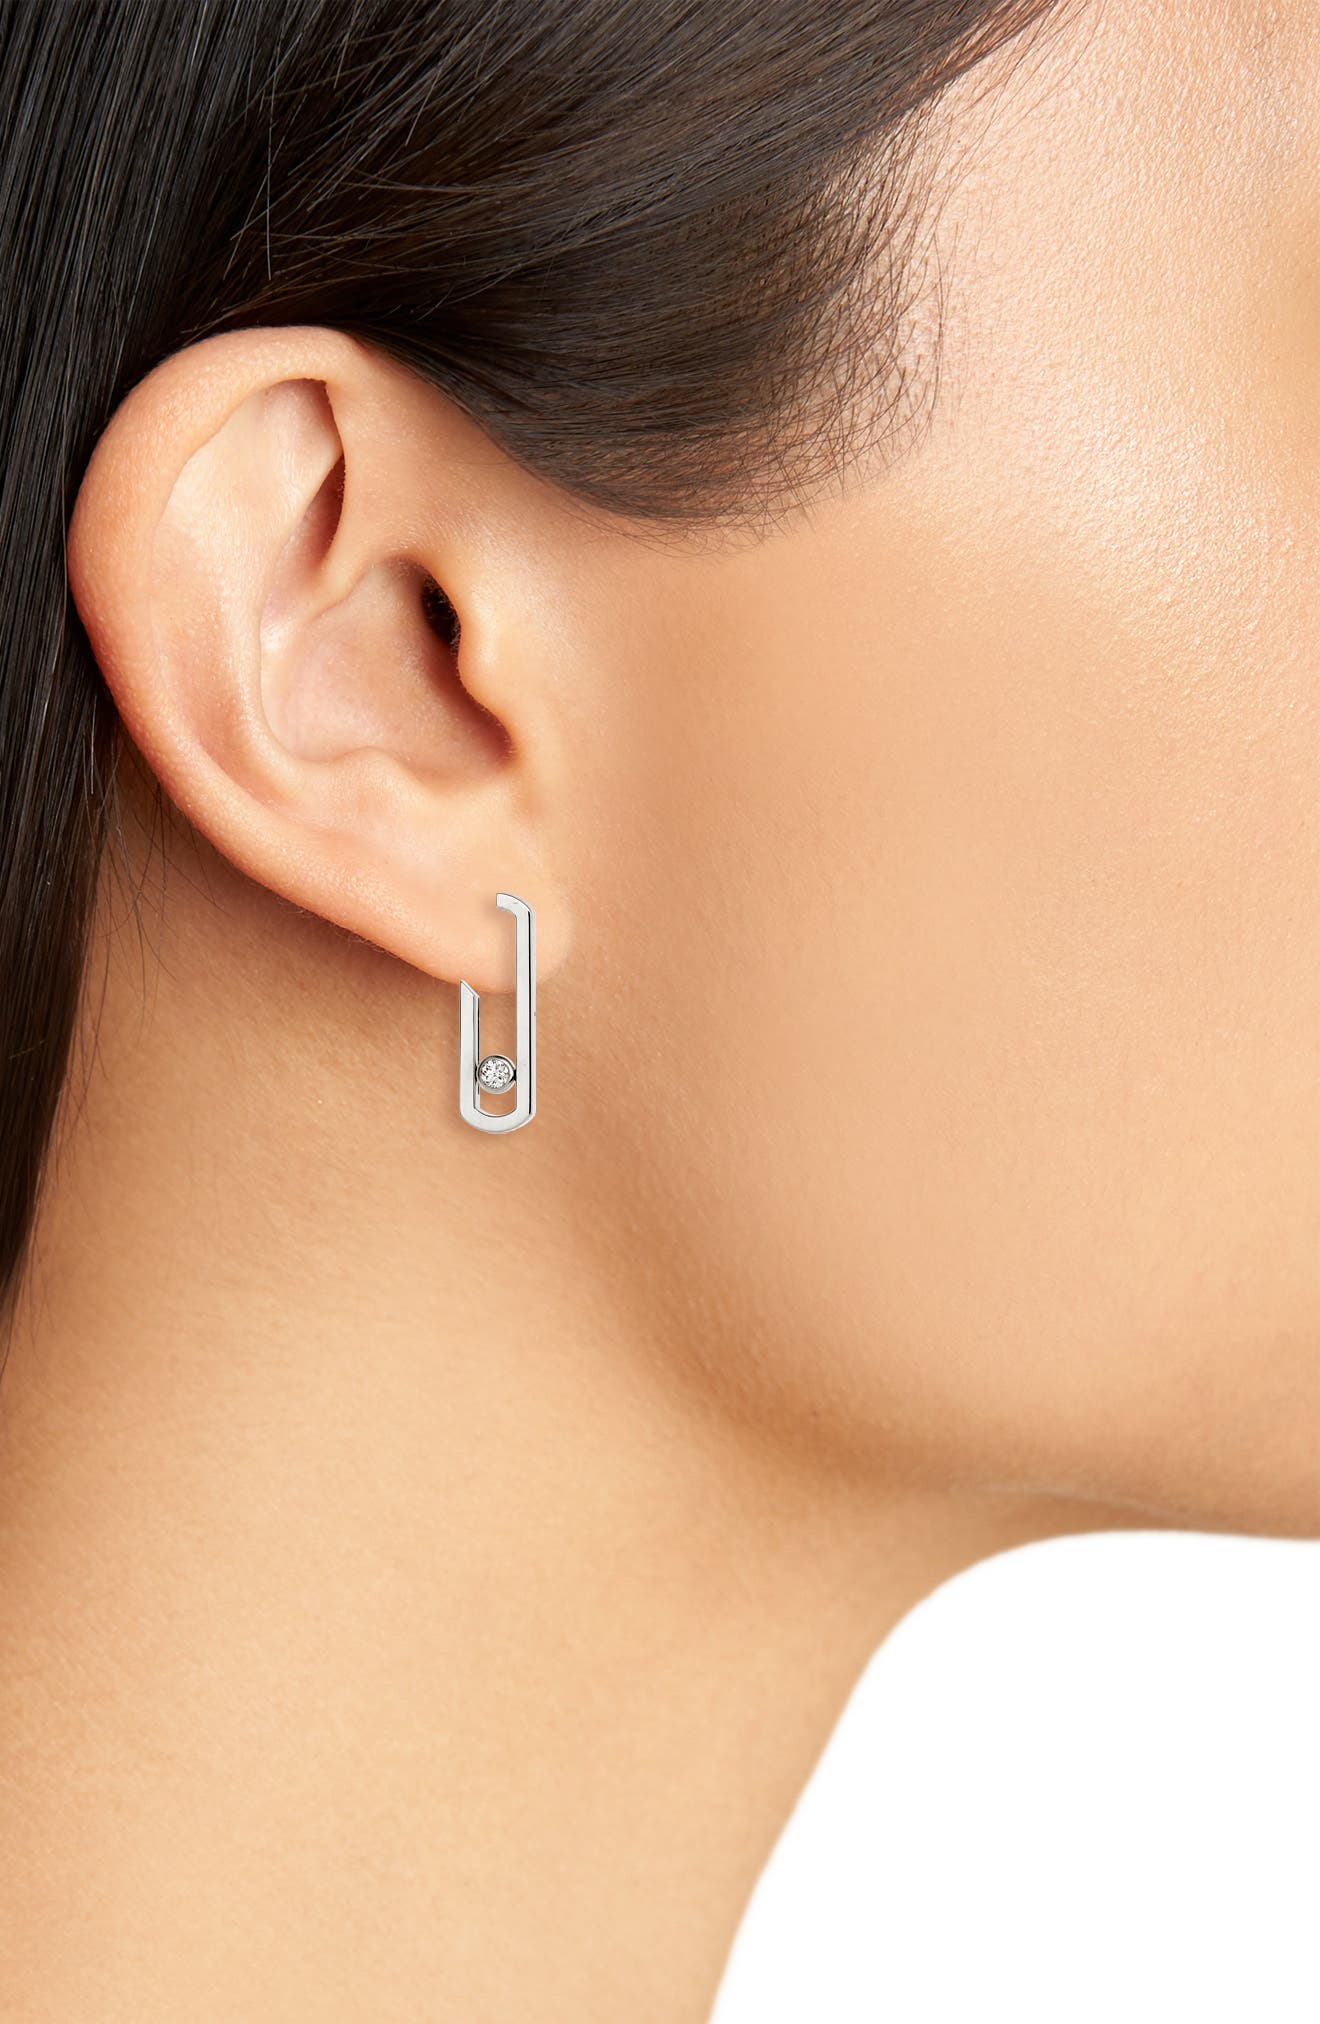 Move Addiction by Gigi Hadid Diamond Earrings,                             Alternate thumbnail 2, color,                             White Gold